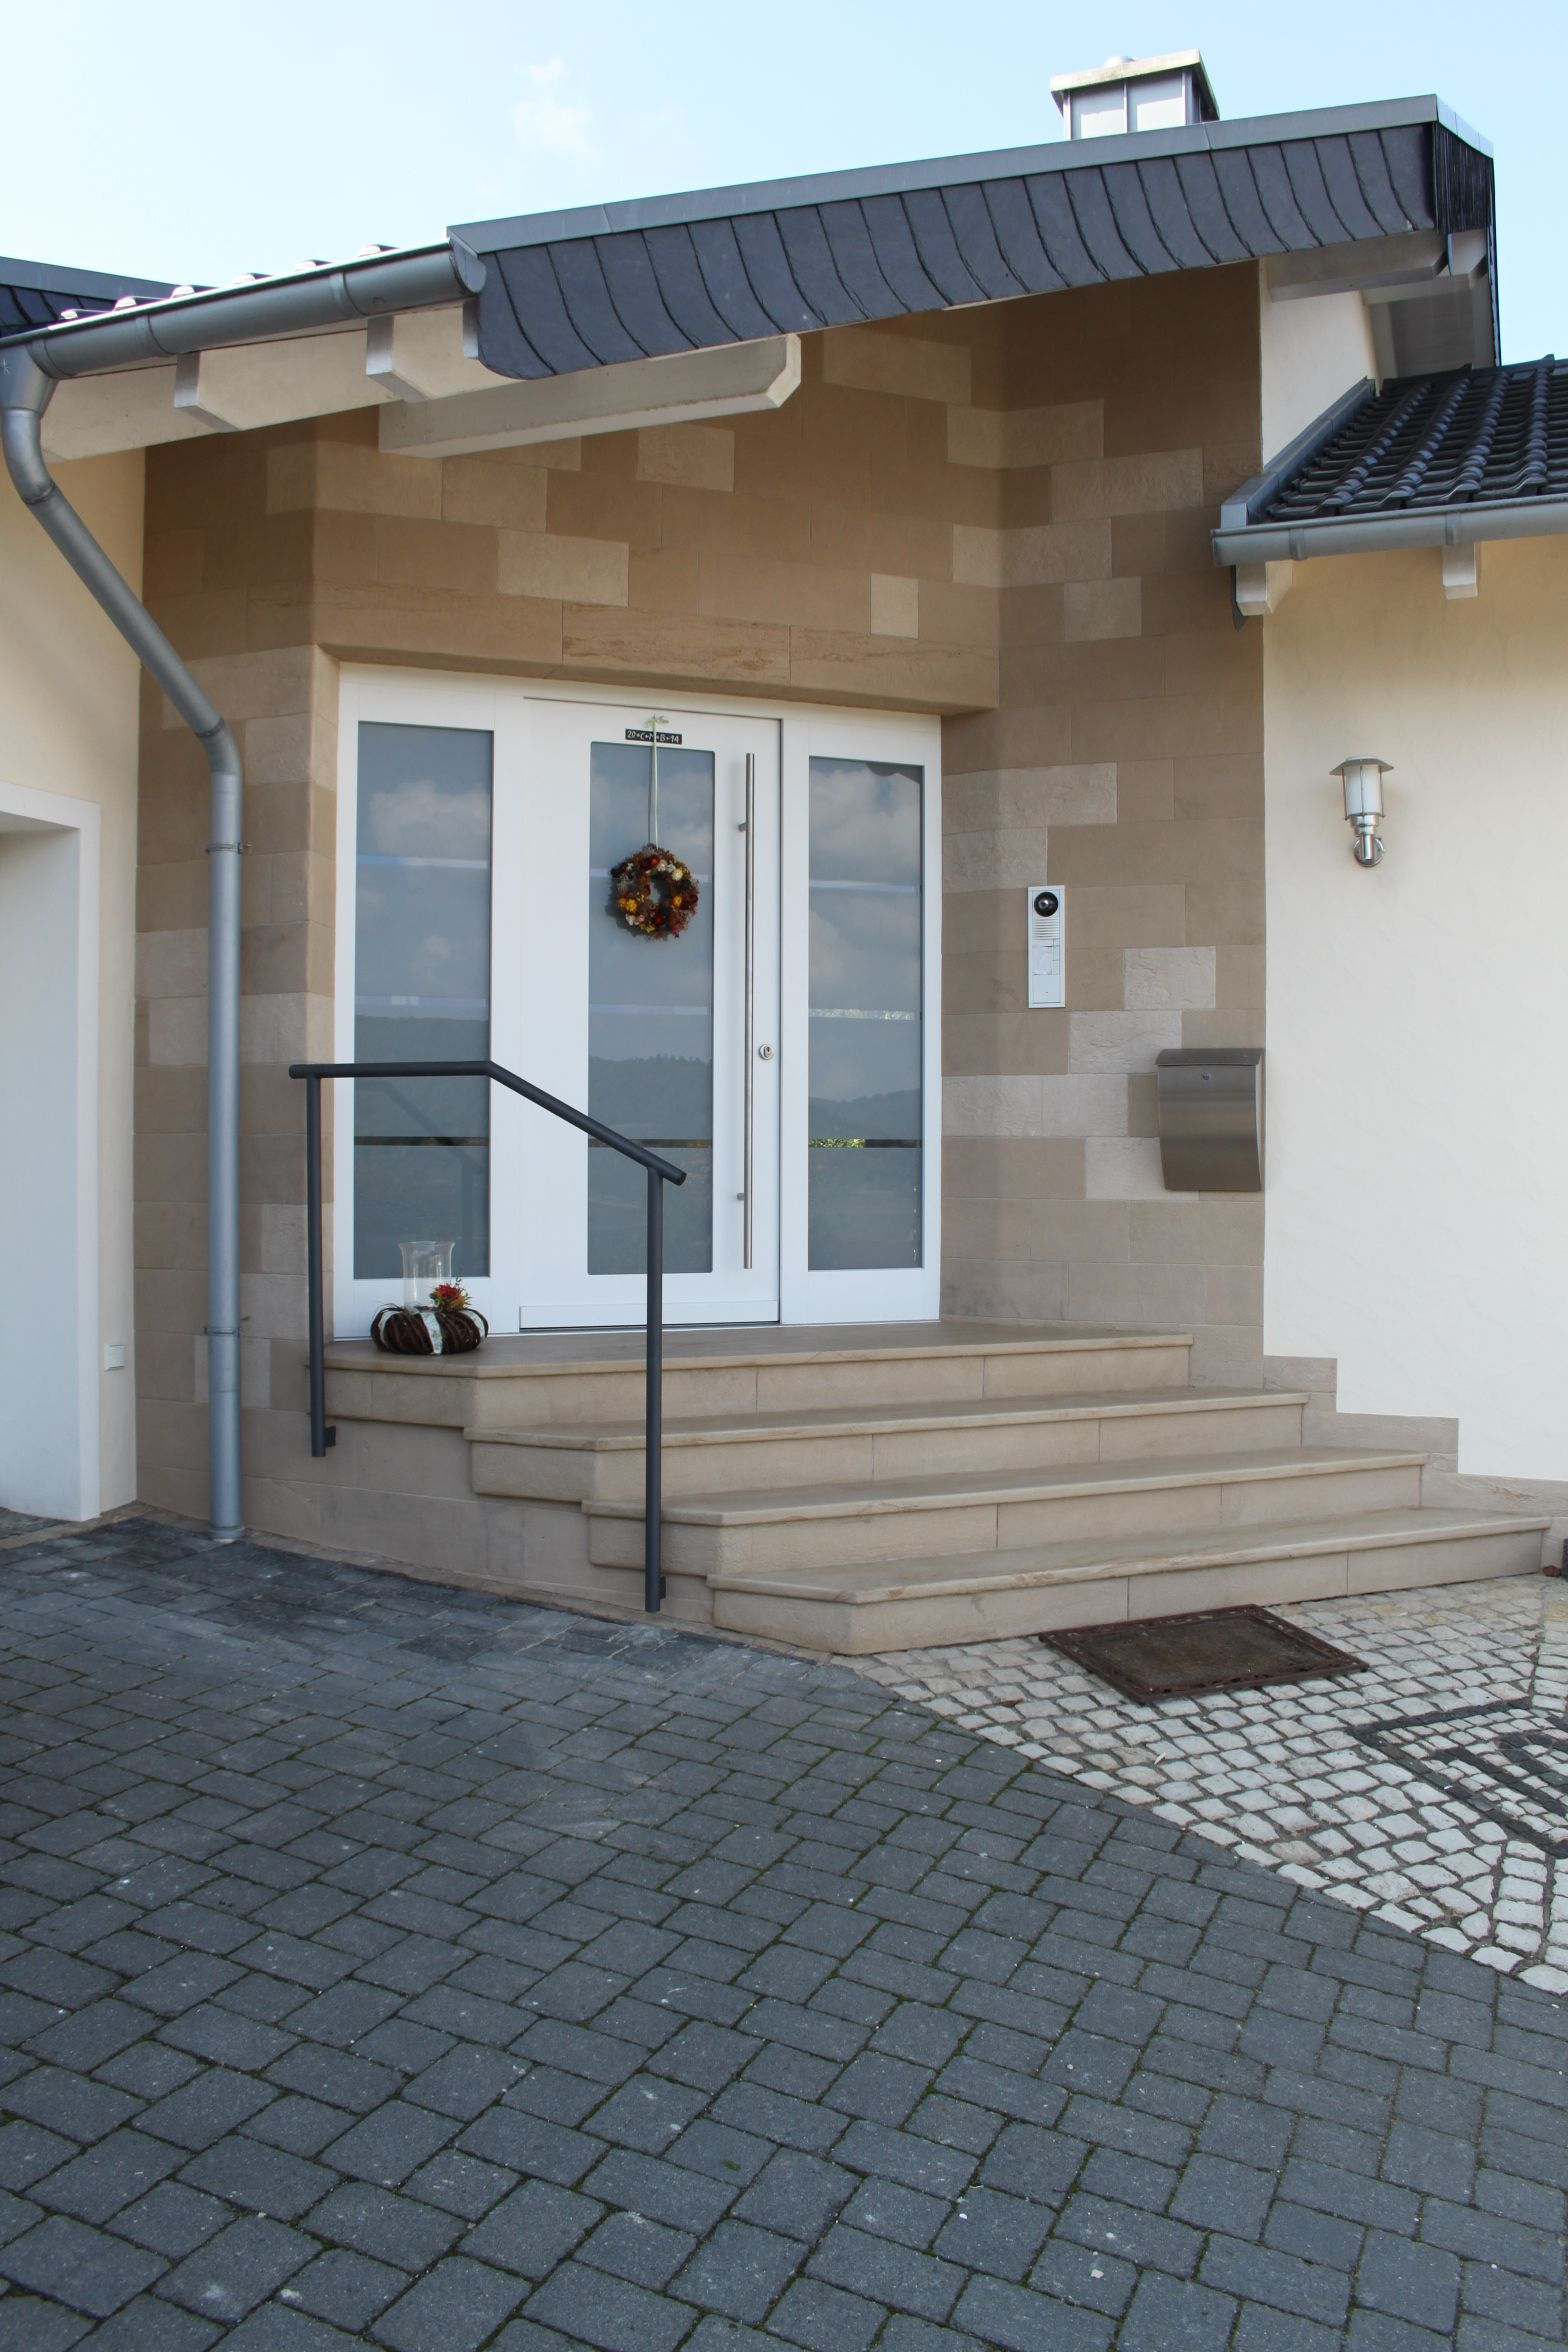 Stone Veneer Tile Cladding For External Areas Wall Steps And Flooring